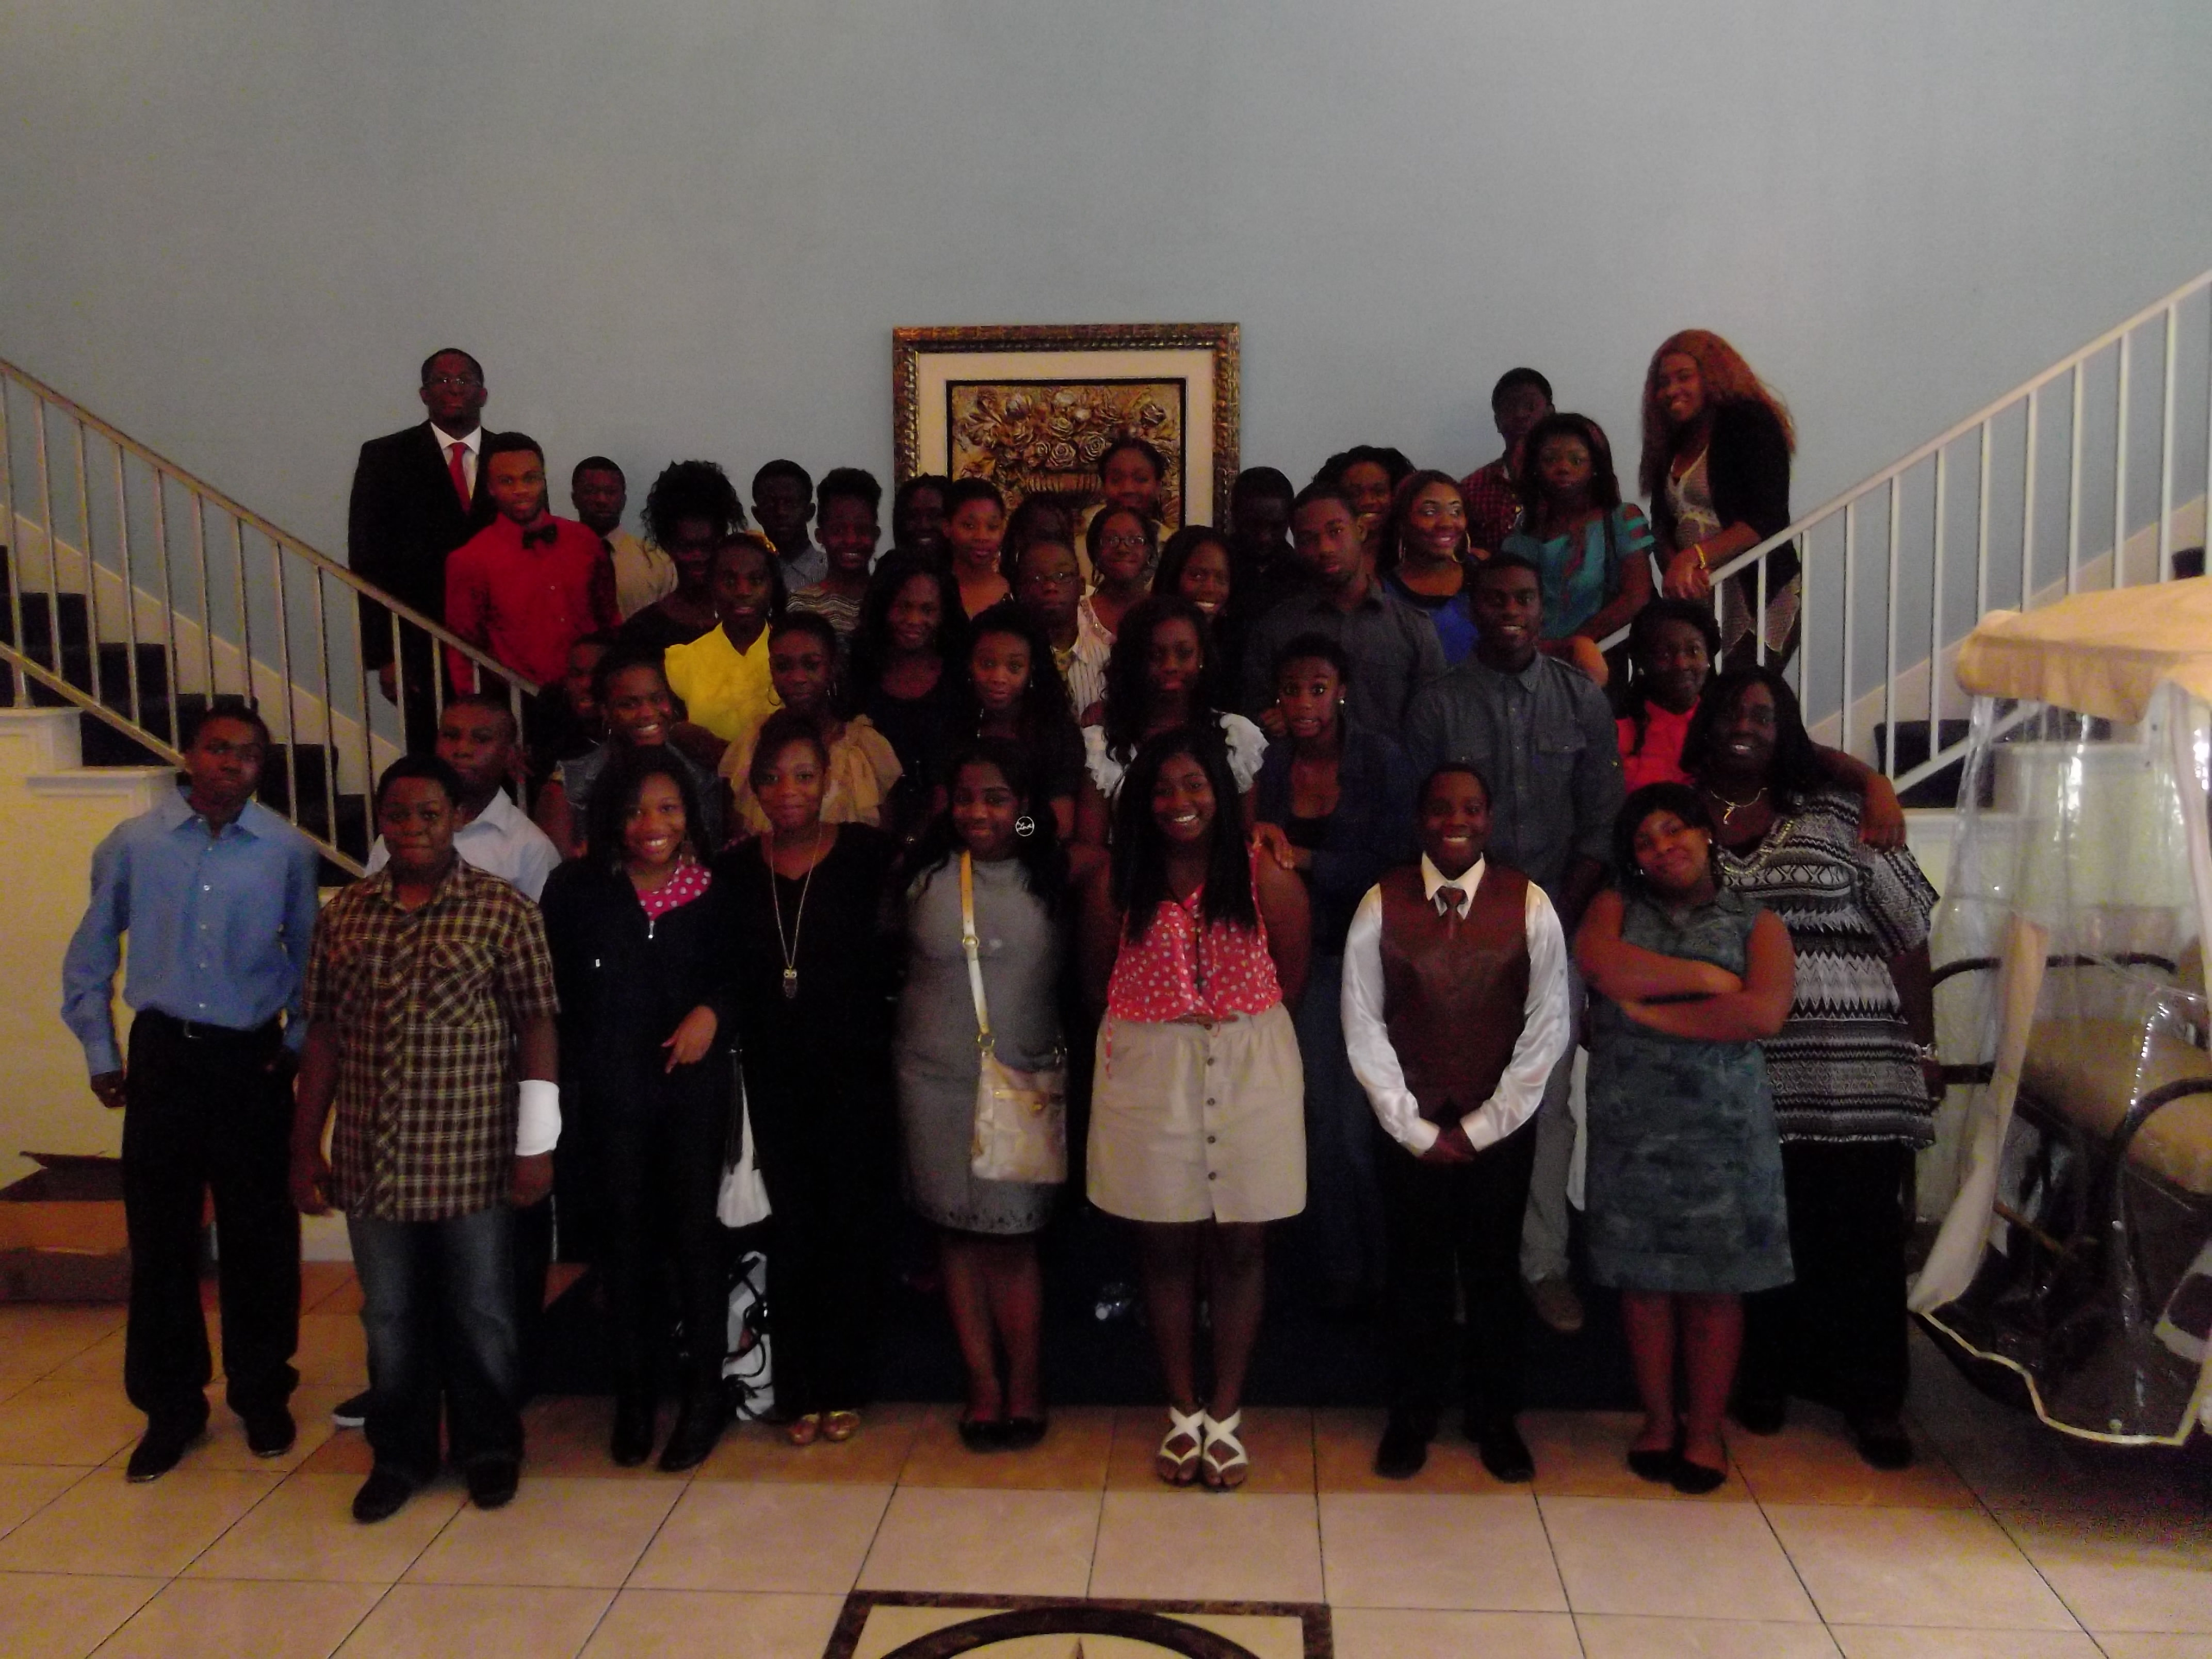 The Youth Ministry